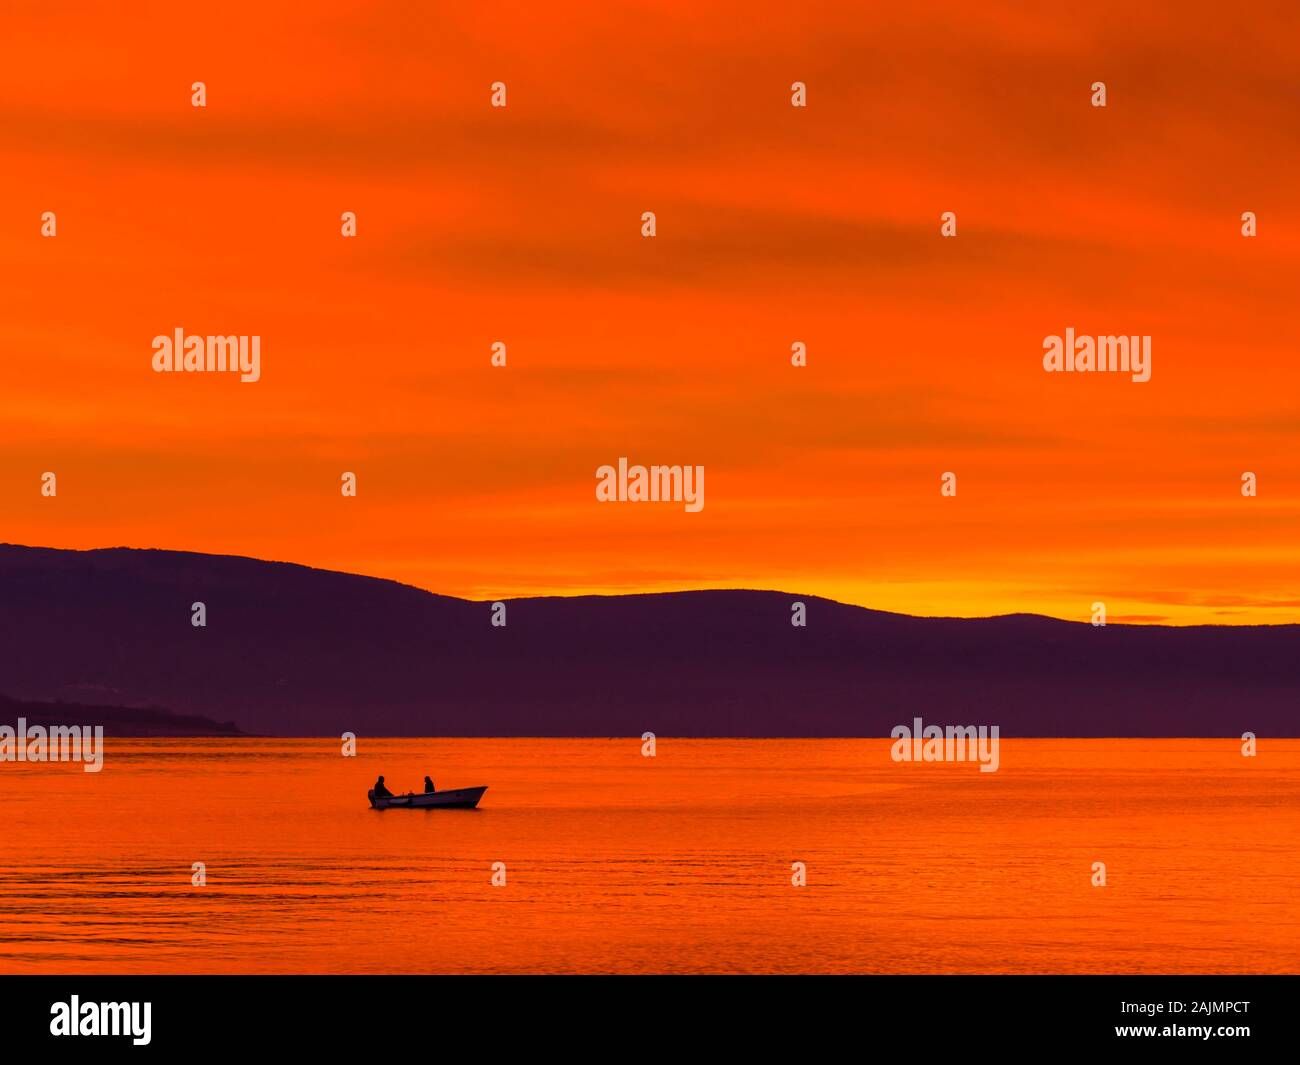 Lonely boat with two fishermen before glorious sunset sea scenery Stock Photo